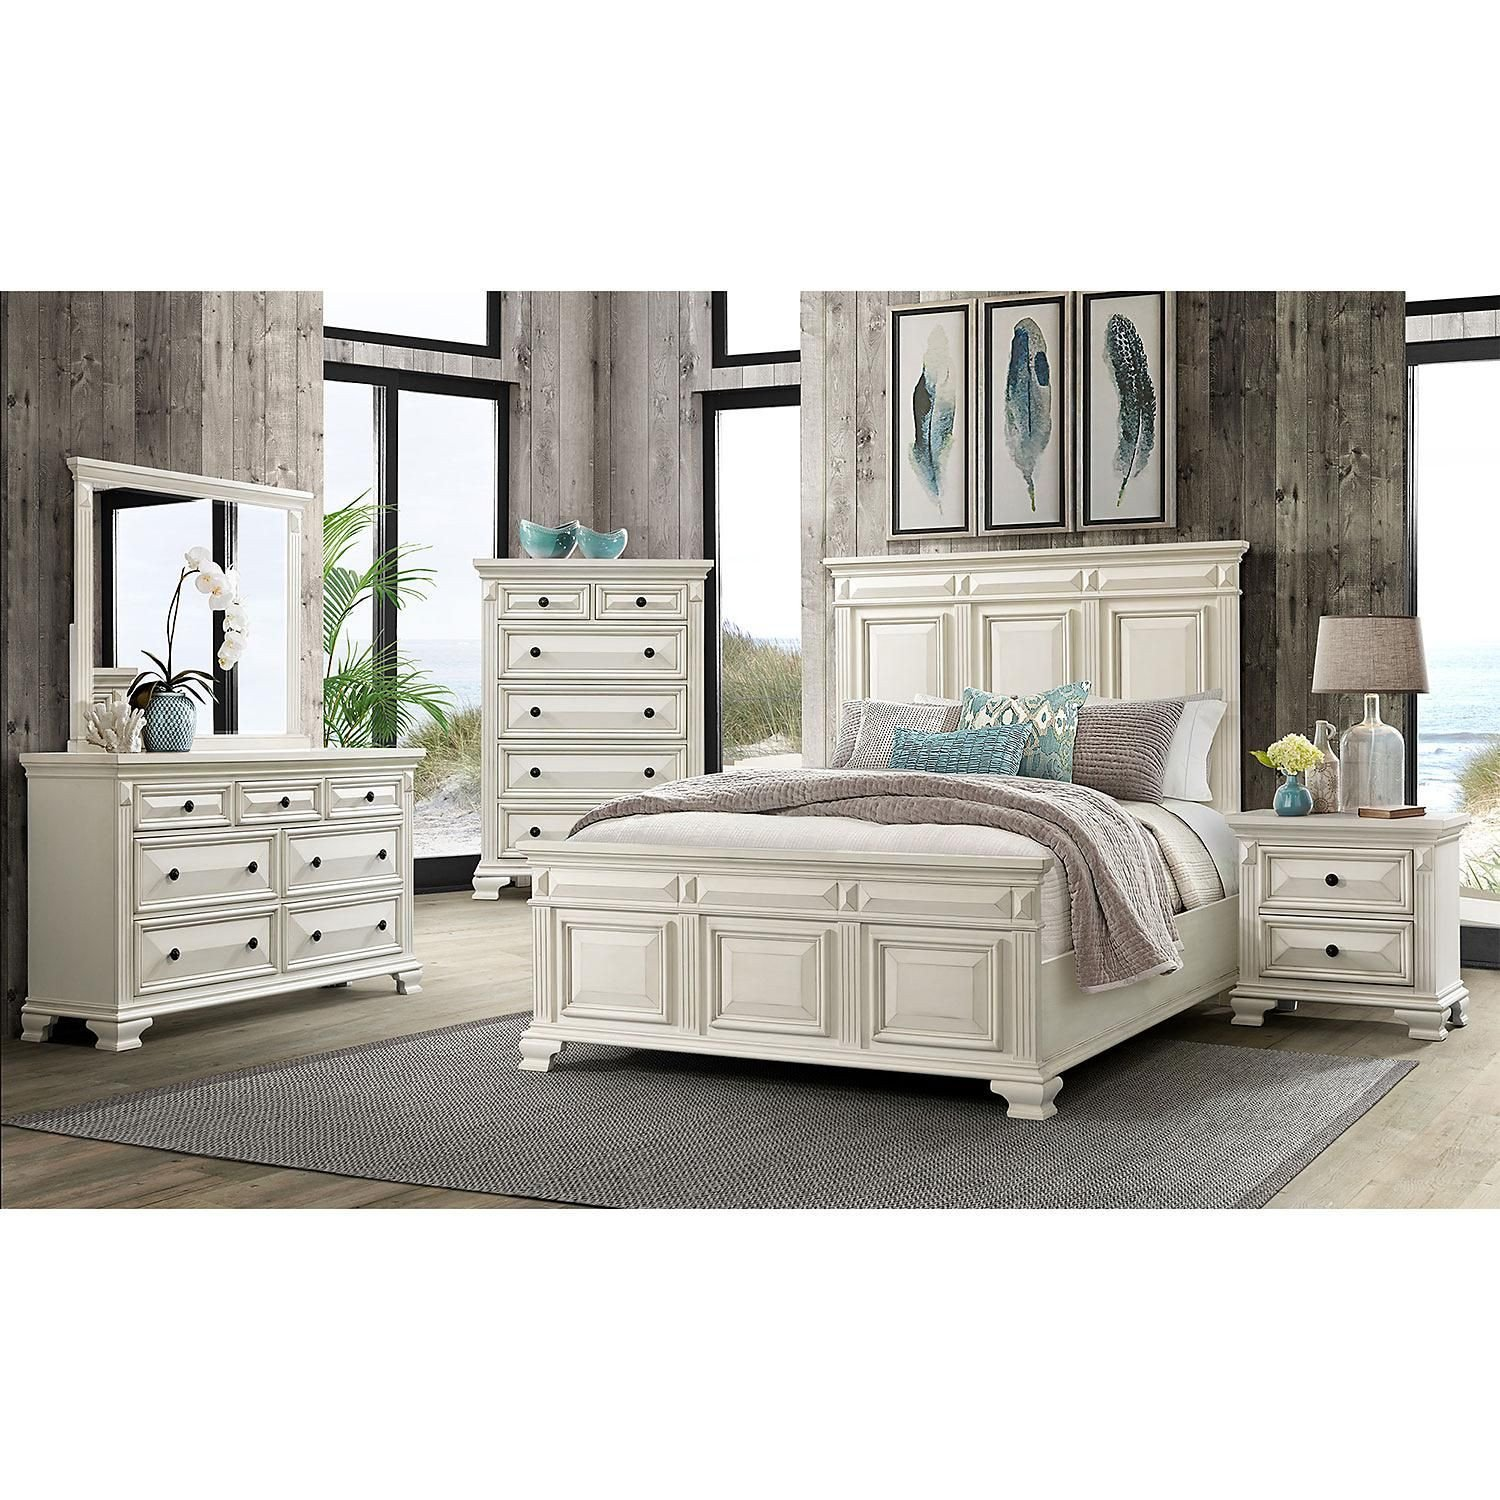 King Size Bedroom Set with Mattress New $1599 00 society Den Trent Panel 6 Piece King Bedroom Set